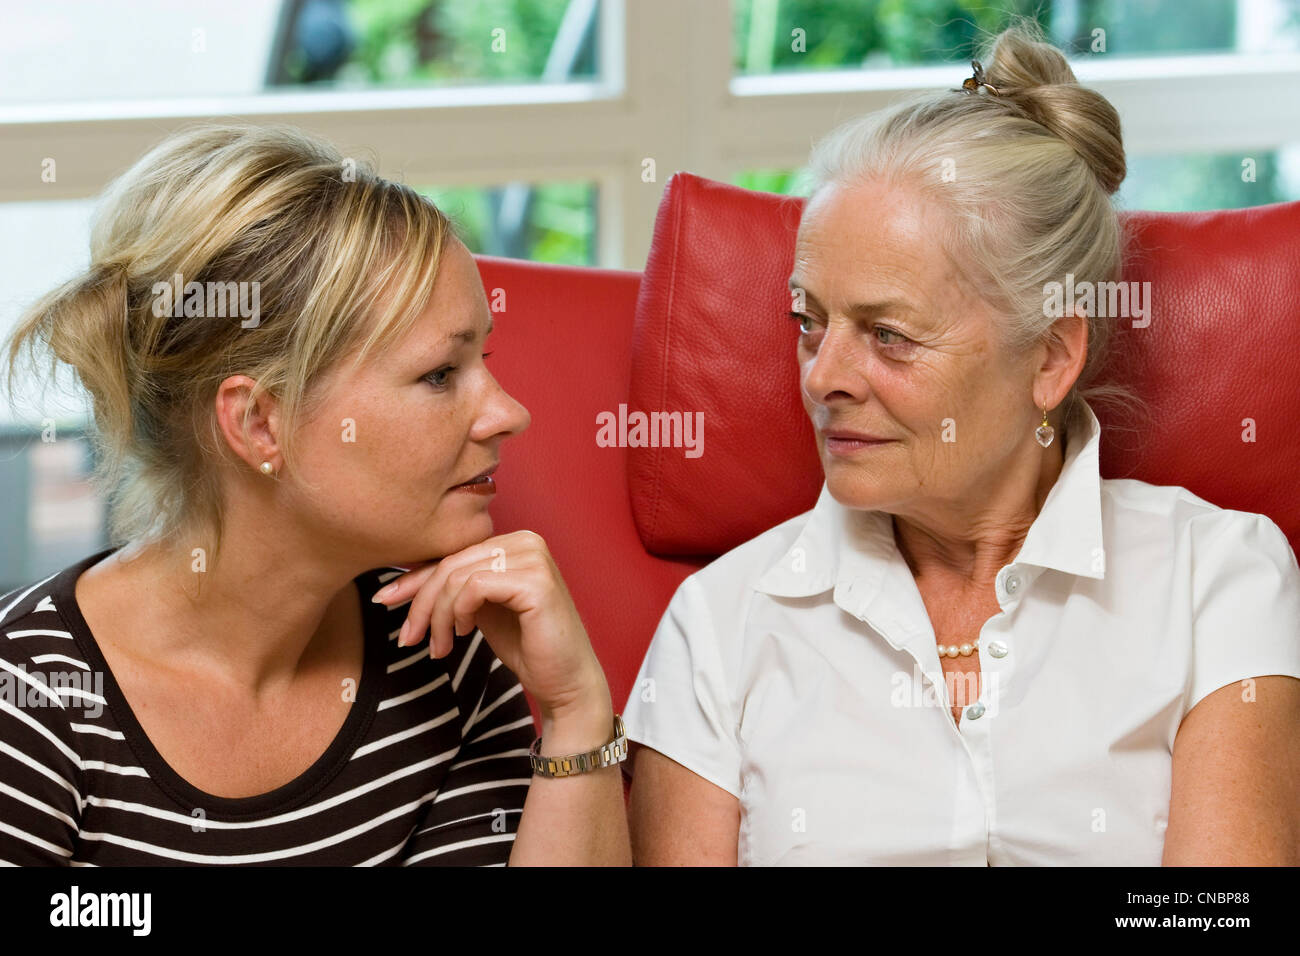 Eldery lady listening to her daughter - Stock Image